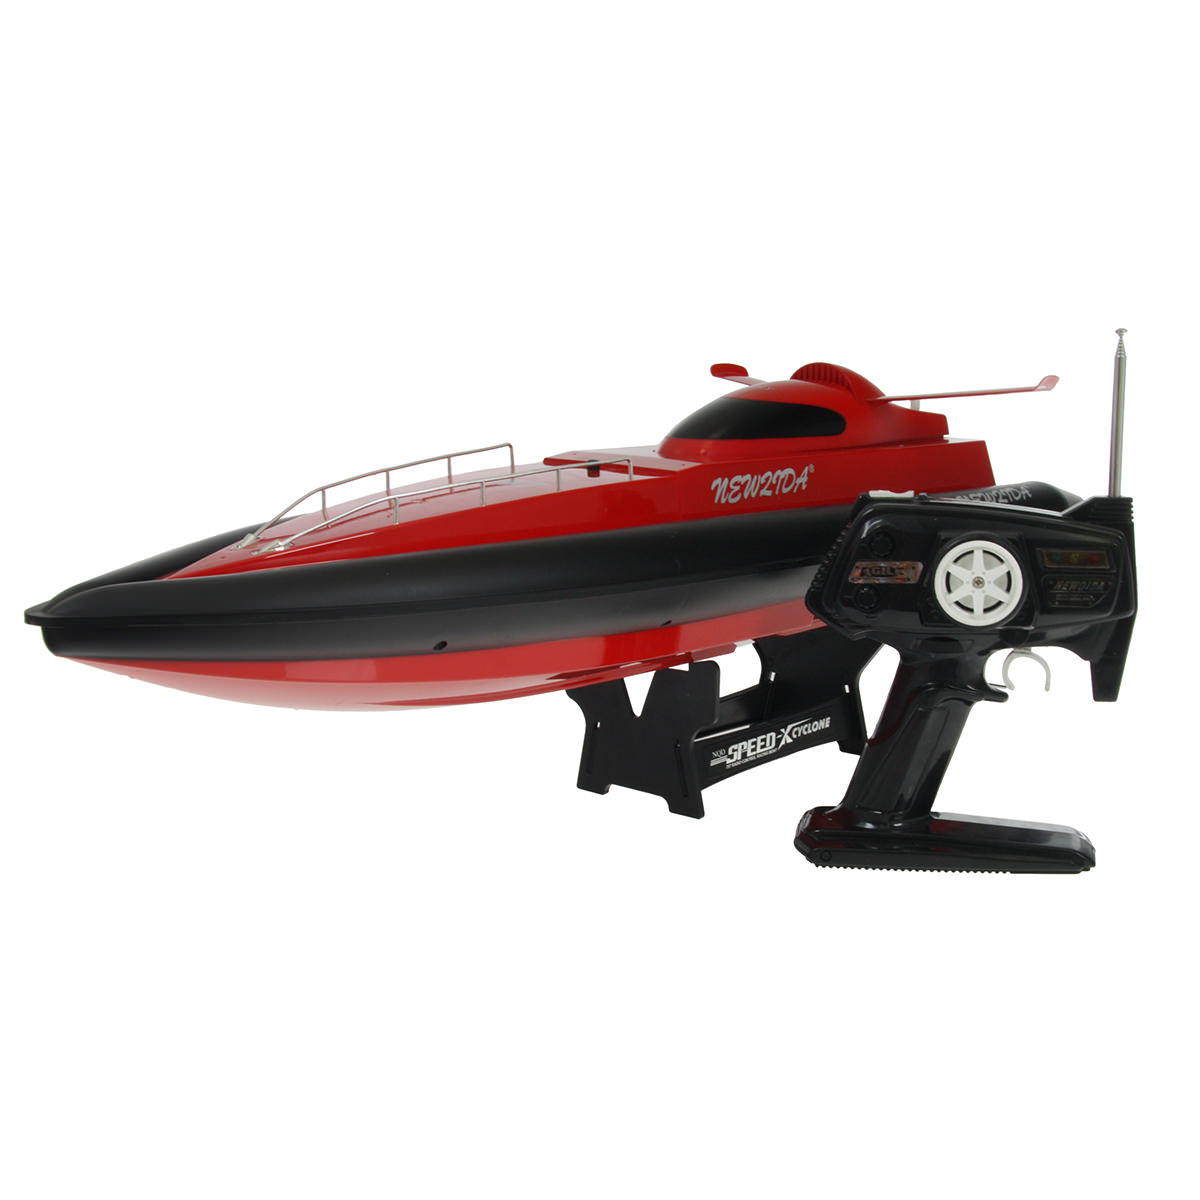 4015 Tracer 2 Red Rc Speed Boat At Hobby Warehouse